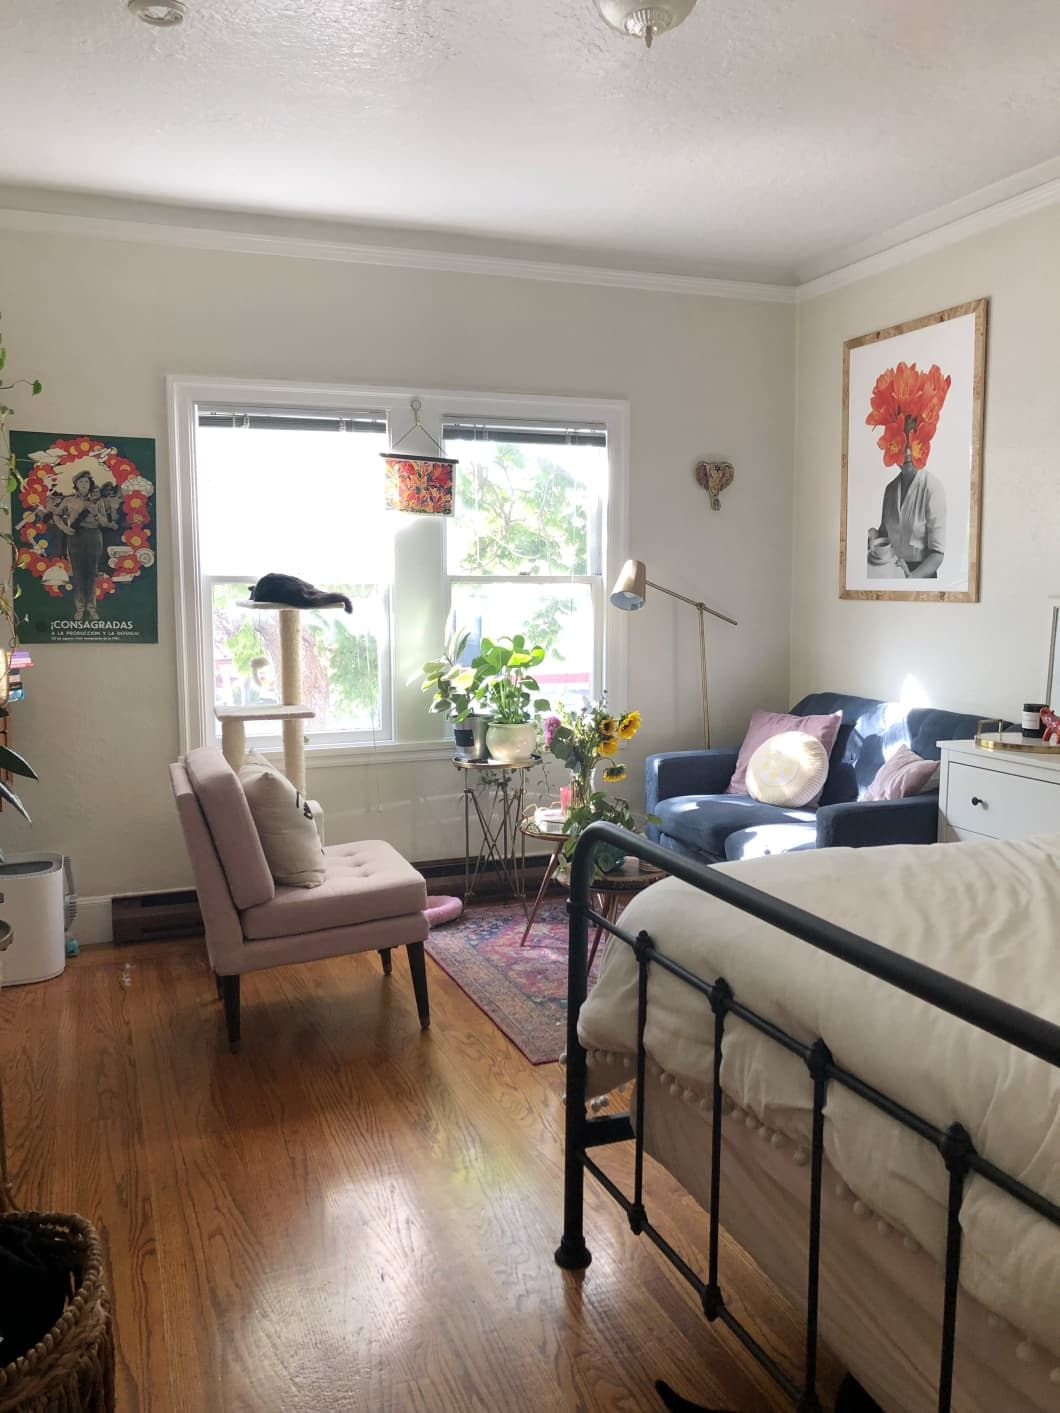 A 370-Square-Foot Studio Is Uncluttered Yet Cozy | Small ...